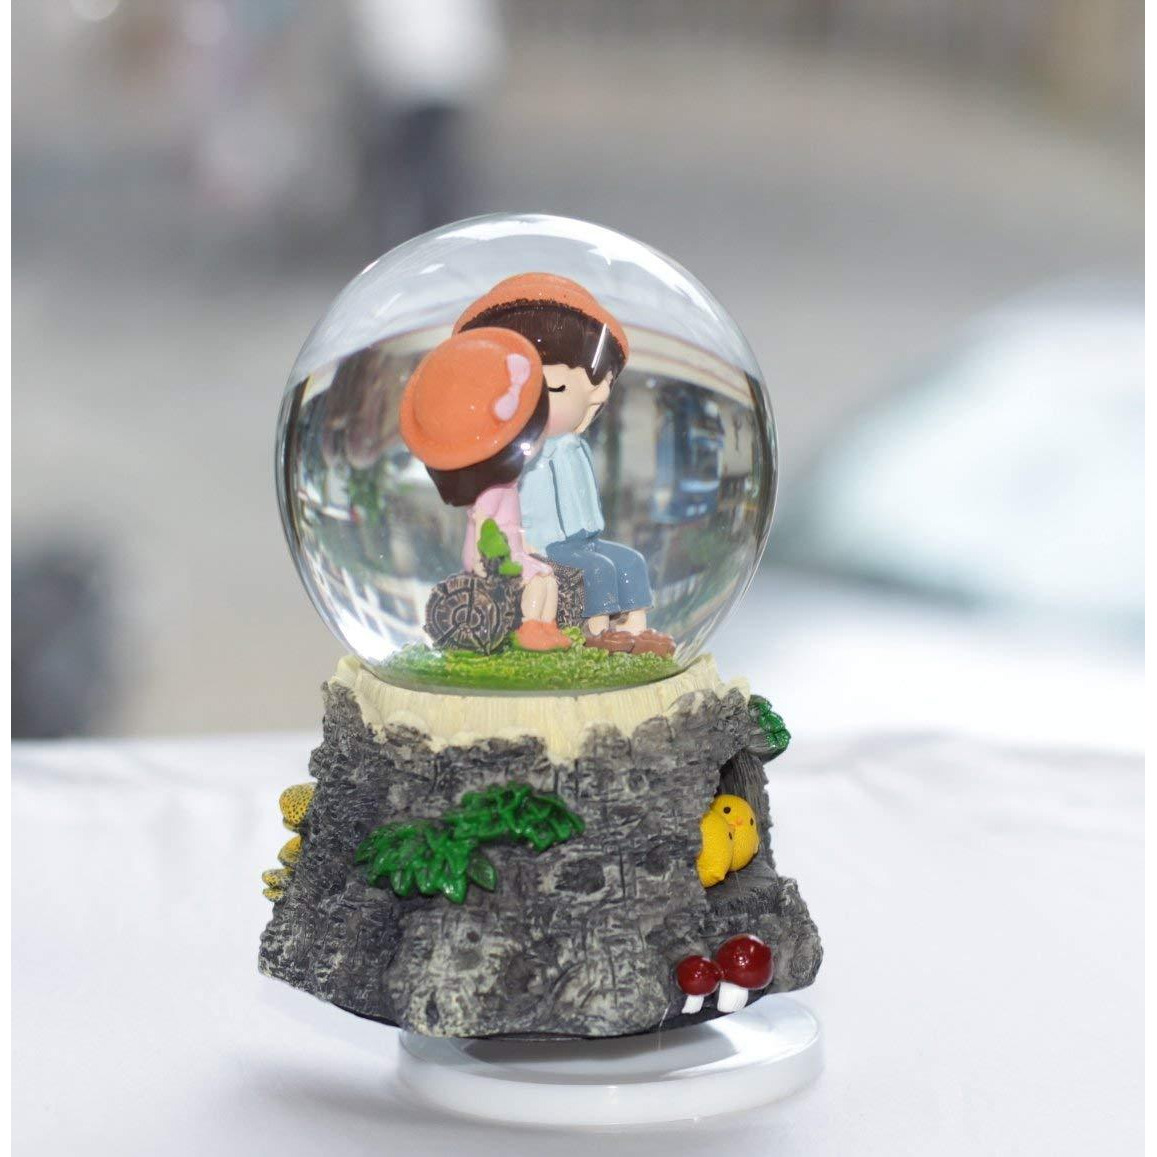 Luxury Decorative Designer Cartoon Character Plastic/Glass Globe With Music & Rotating For Home Decor/Living Room/Bedroom (Multicolor) Best Home Decor Showpiece Figurine